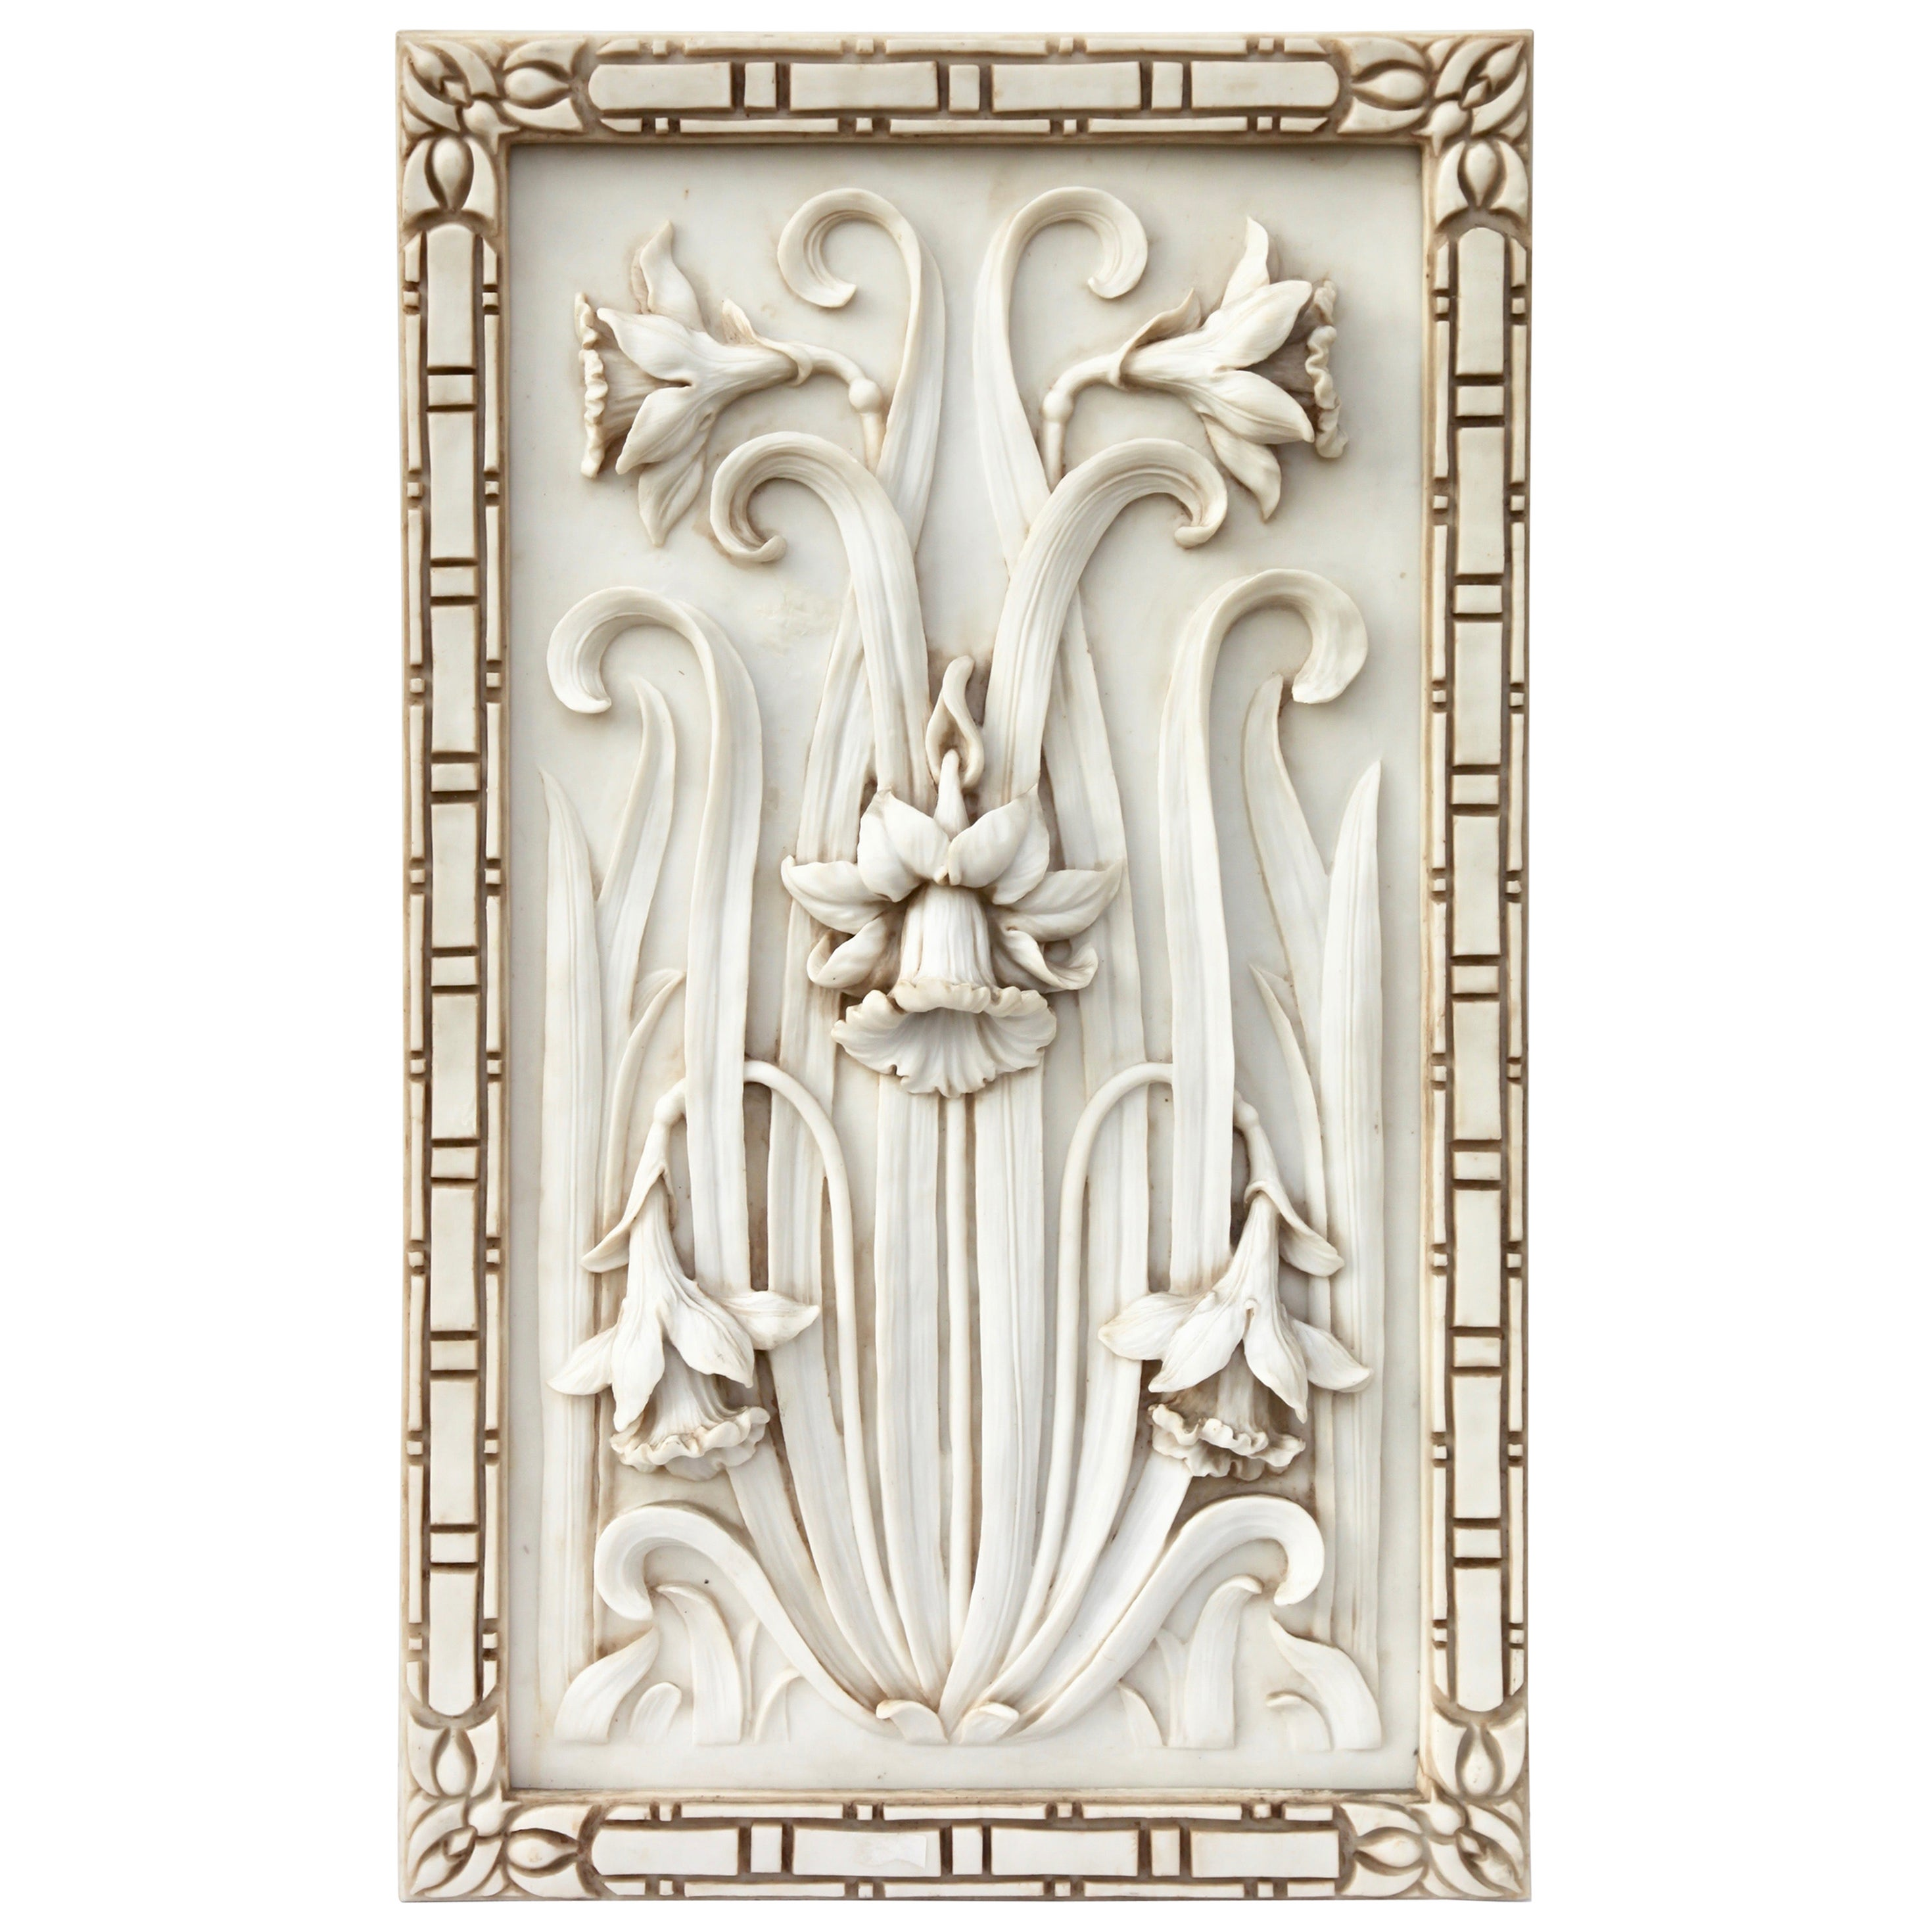 Art Nouveau 3-D Alabaster Sculptural Panel with Foliage and Daffodils / Jonquils